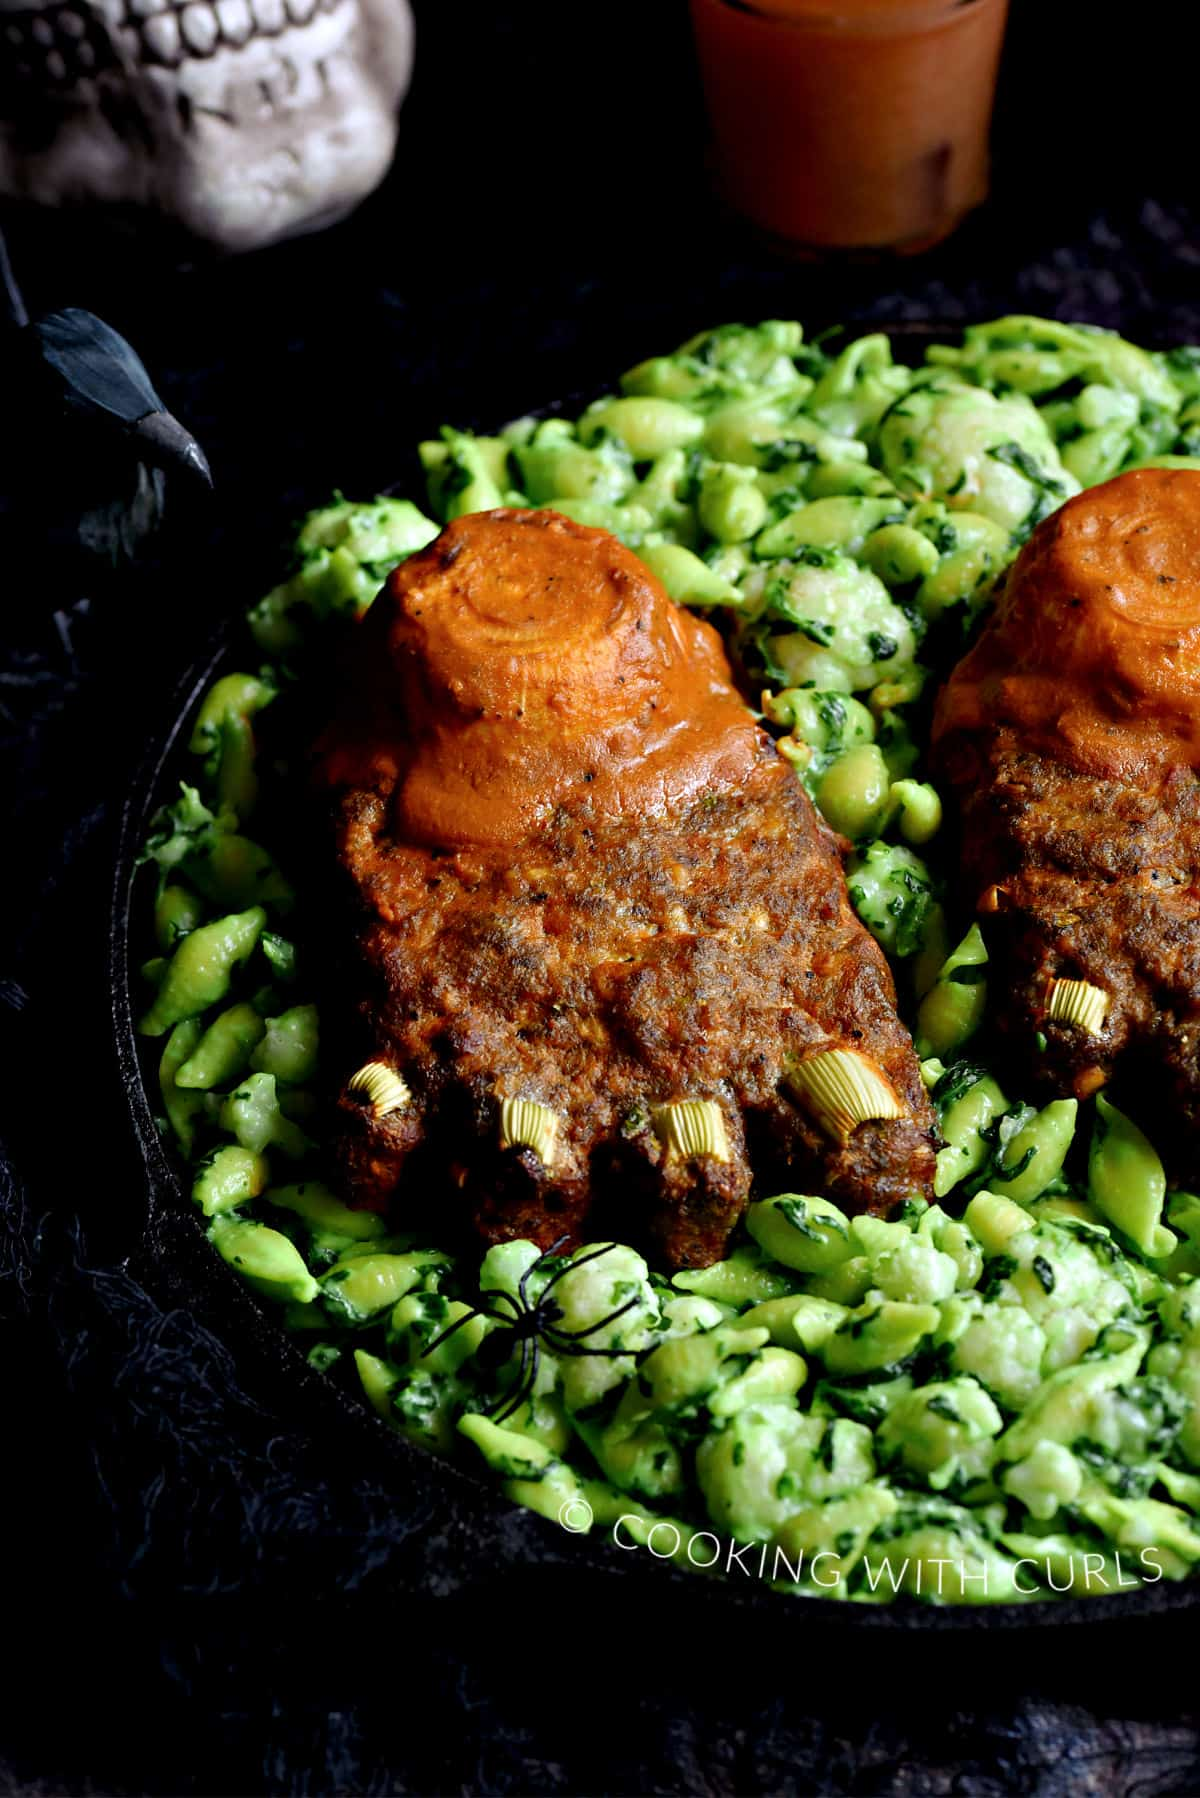 Two feet shaped meatloaves on a bed of green mac and cheese.